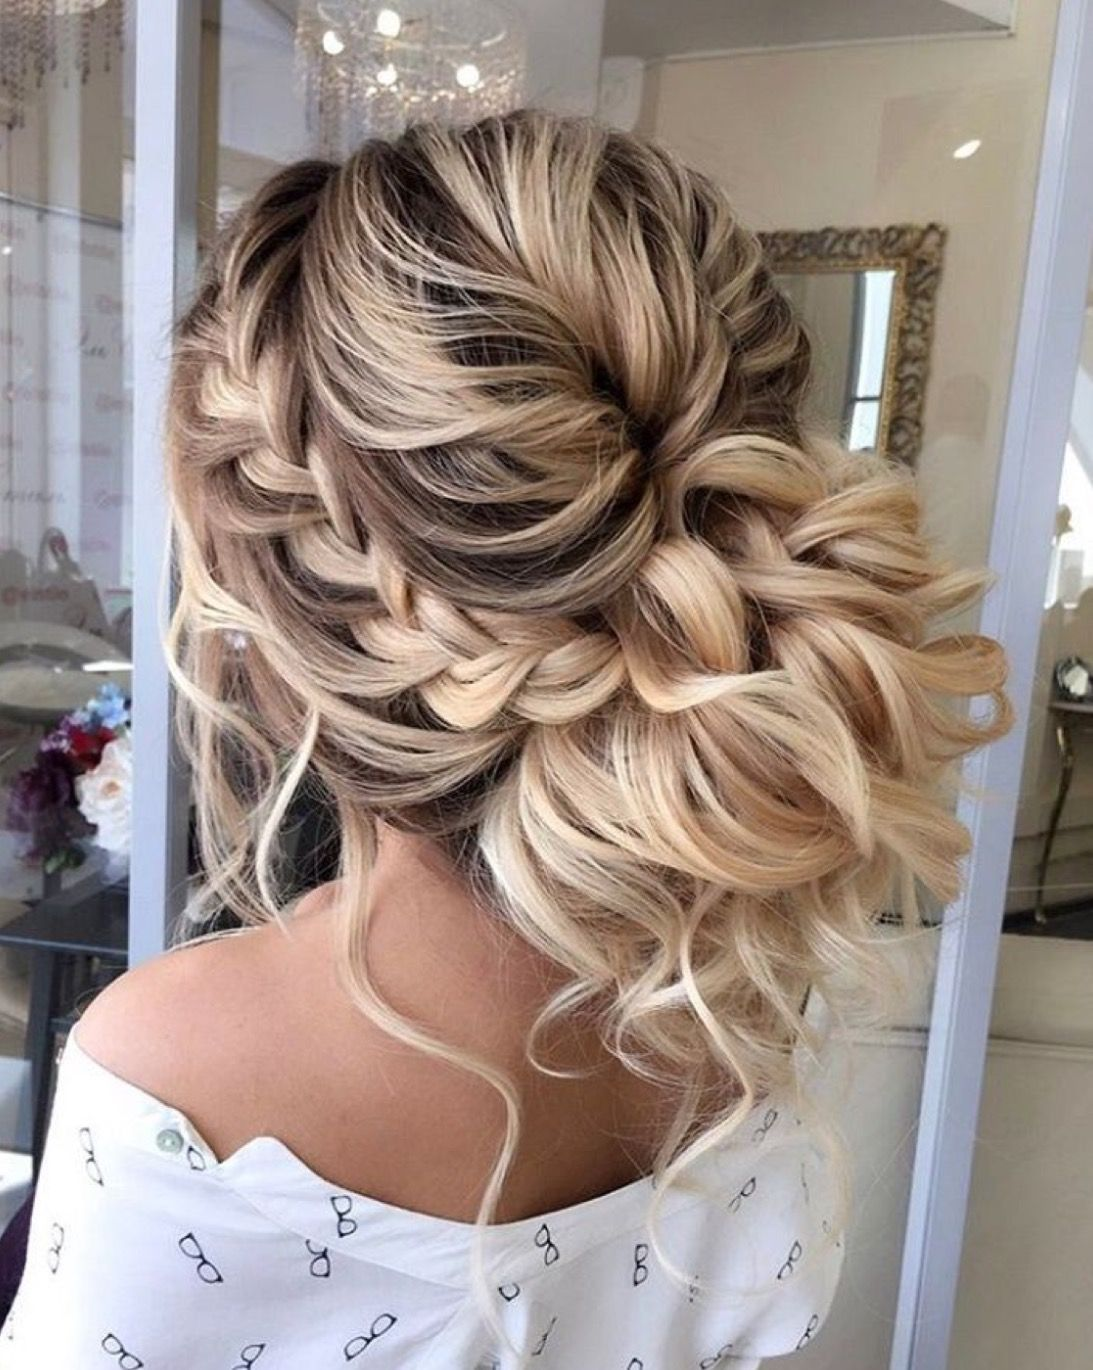 Low Messy Bun Updo With Curls And A Braid Perfect Updo For A Wedding Or Any Special Occasion Wedding Wedding Hair Inspiration Hair Styles Long Hair Styles